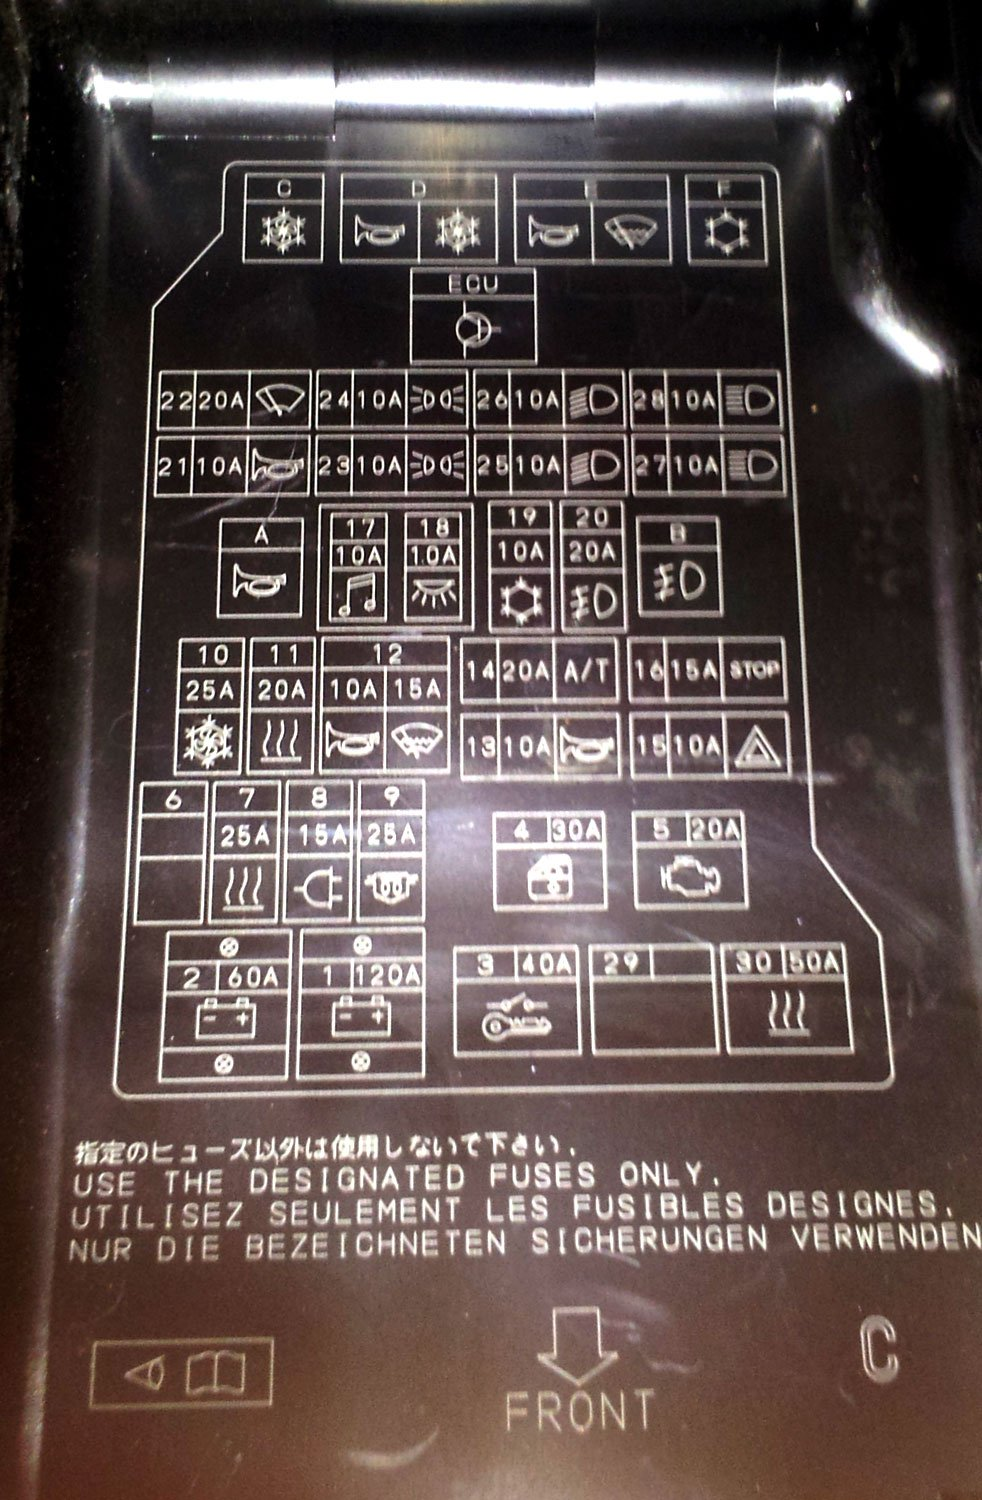 mitsubishi pajero fuse box diagram mazda fuse box diagram